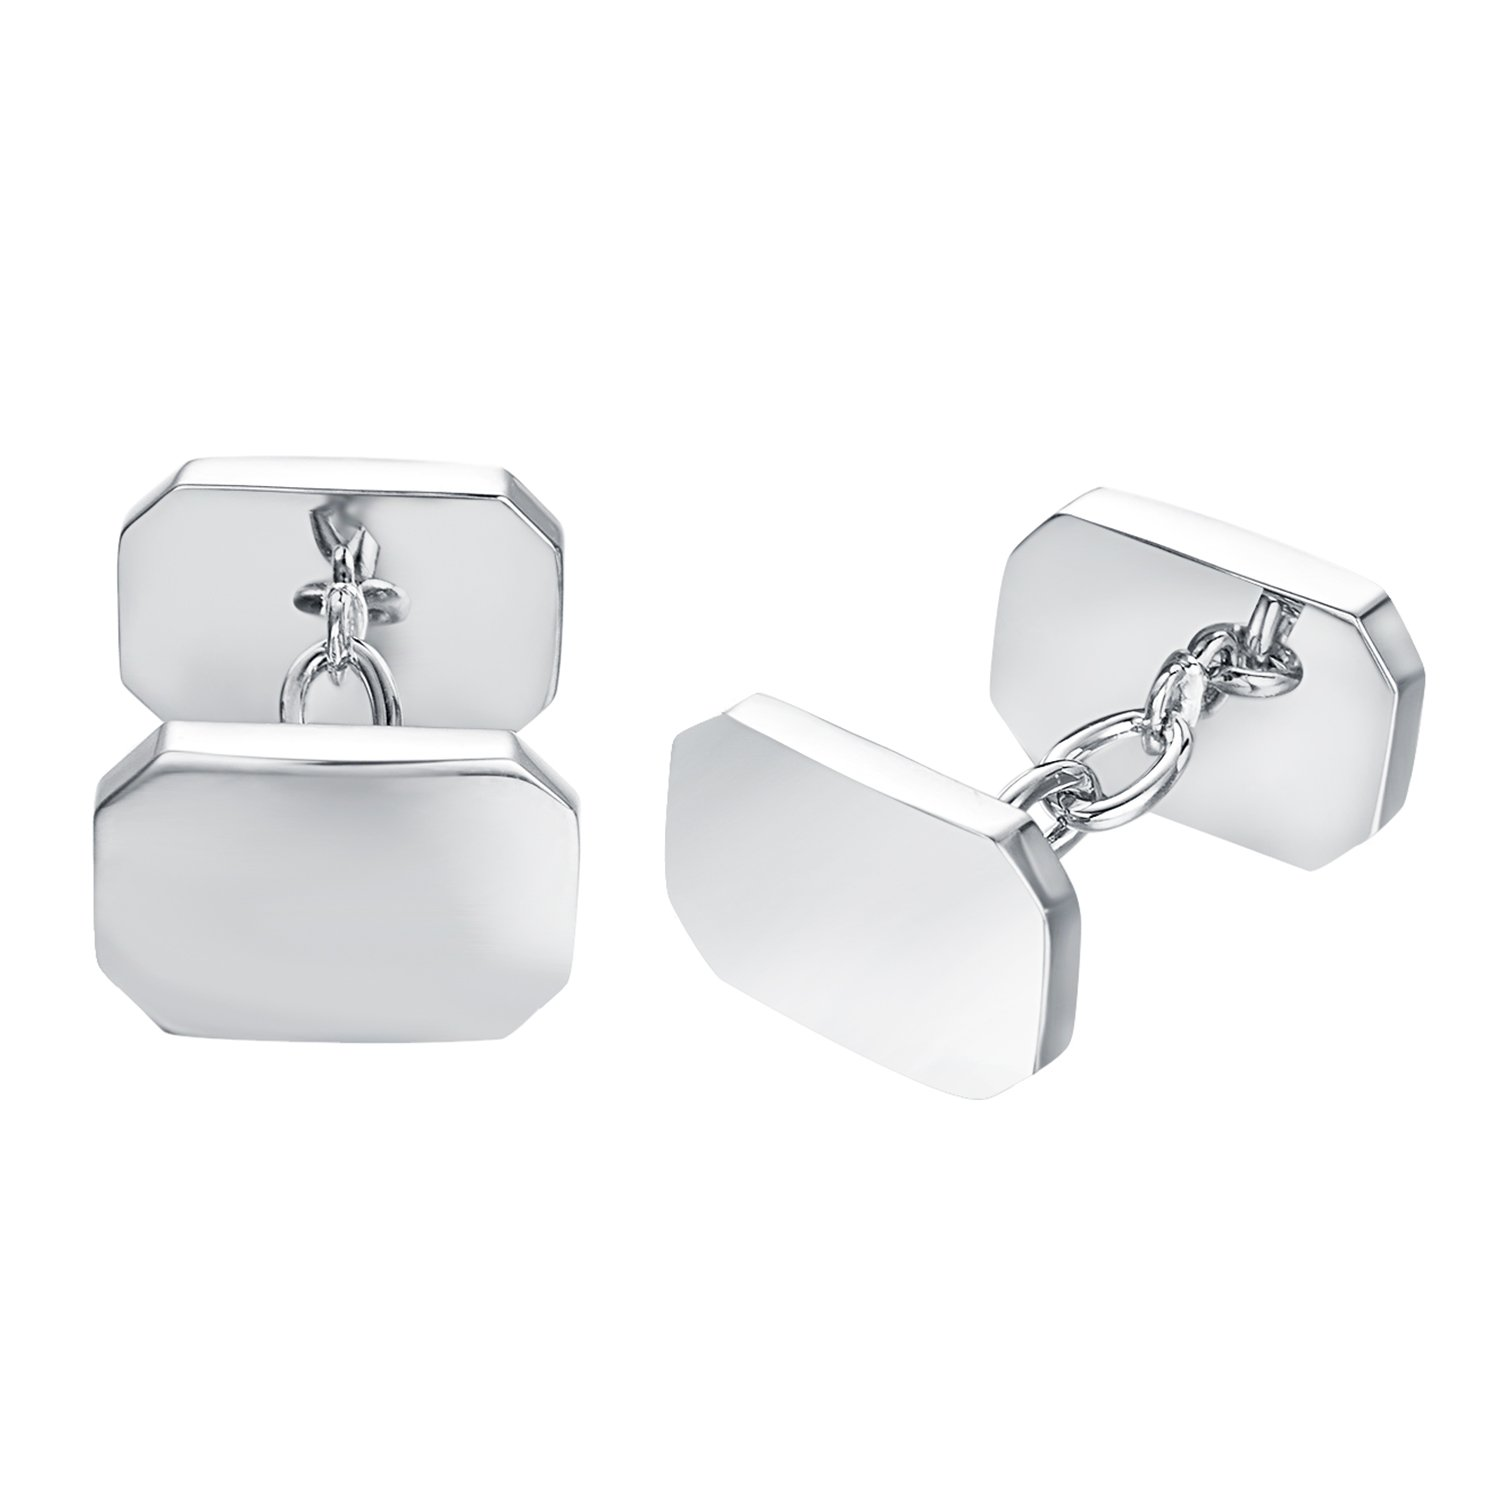 Yoursfs Square Cufflink Blanks Classic Silver Plated Cuff Links for Men's Shirt Tuxedo